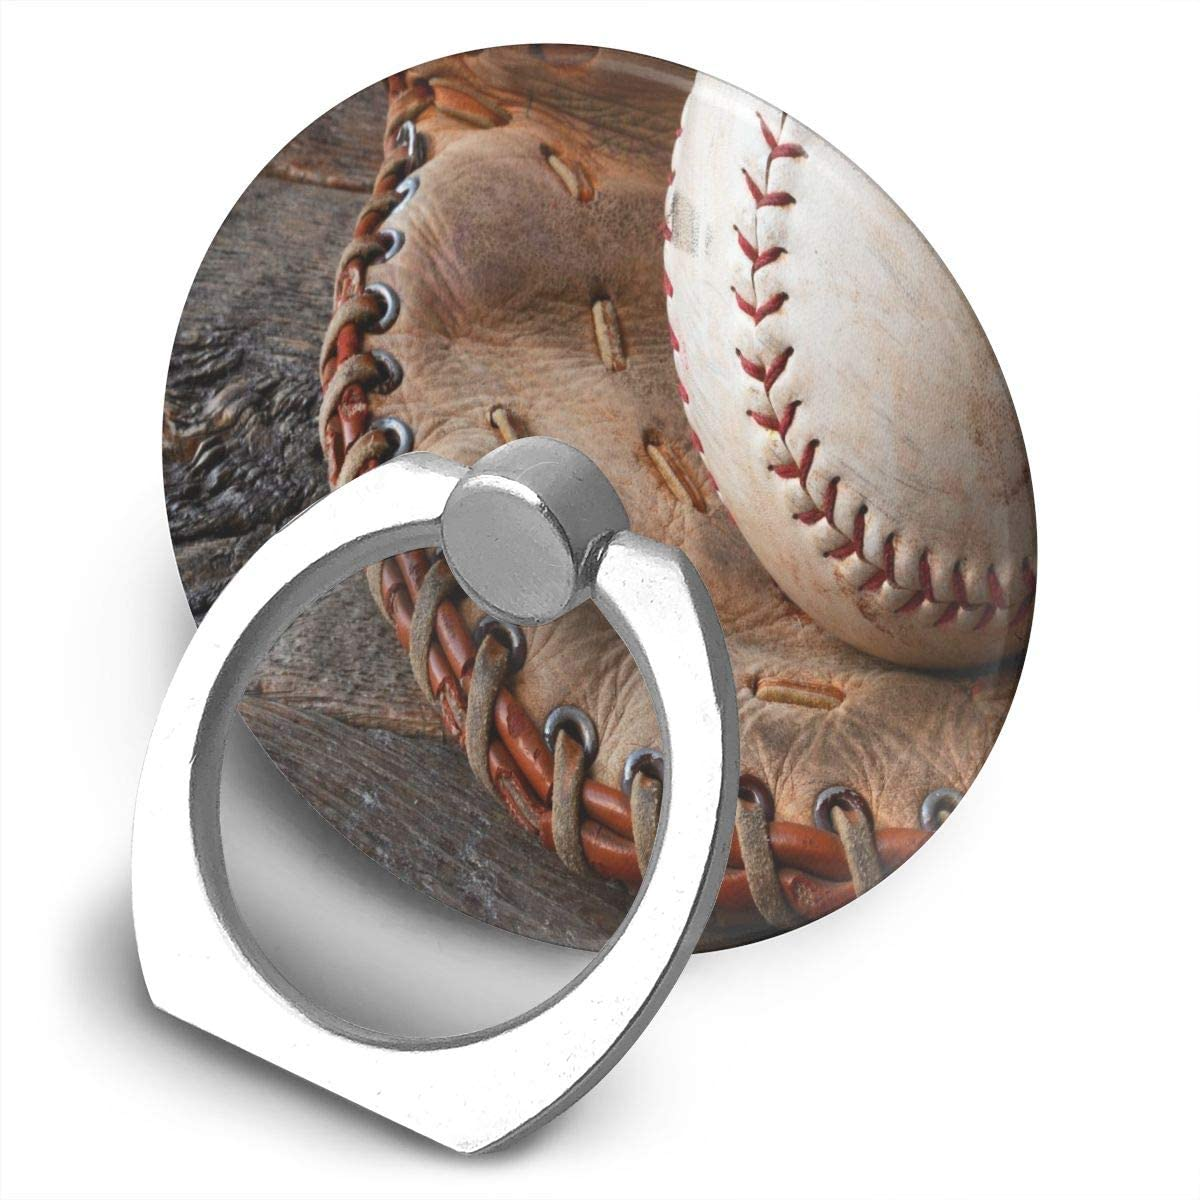 Universal Phone Ring Holder Baseball and Leather Baseball Glove. Round Cell Phone Ring Stand Adjustable 360°Rotation Finger Kickstand Grip-Silver Mobile Phone Stand for Women Kids Men Ladies Smartpho